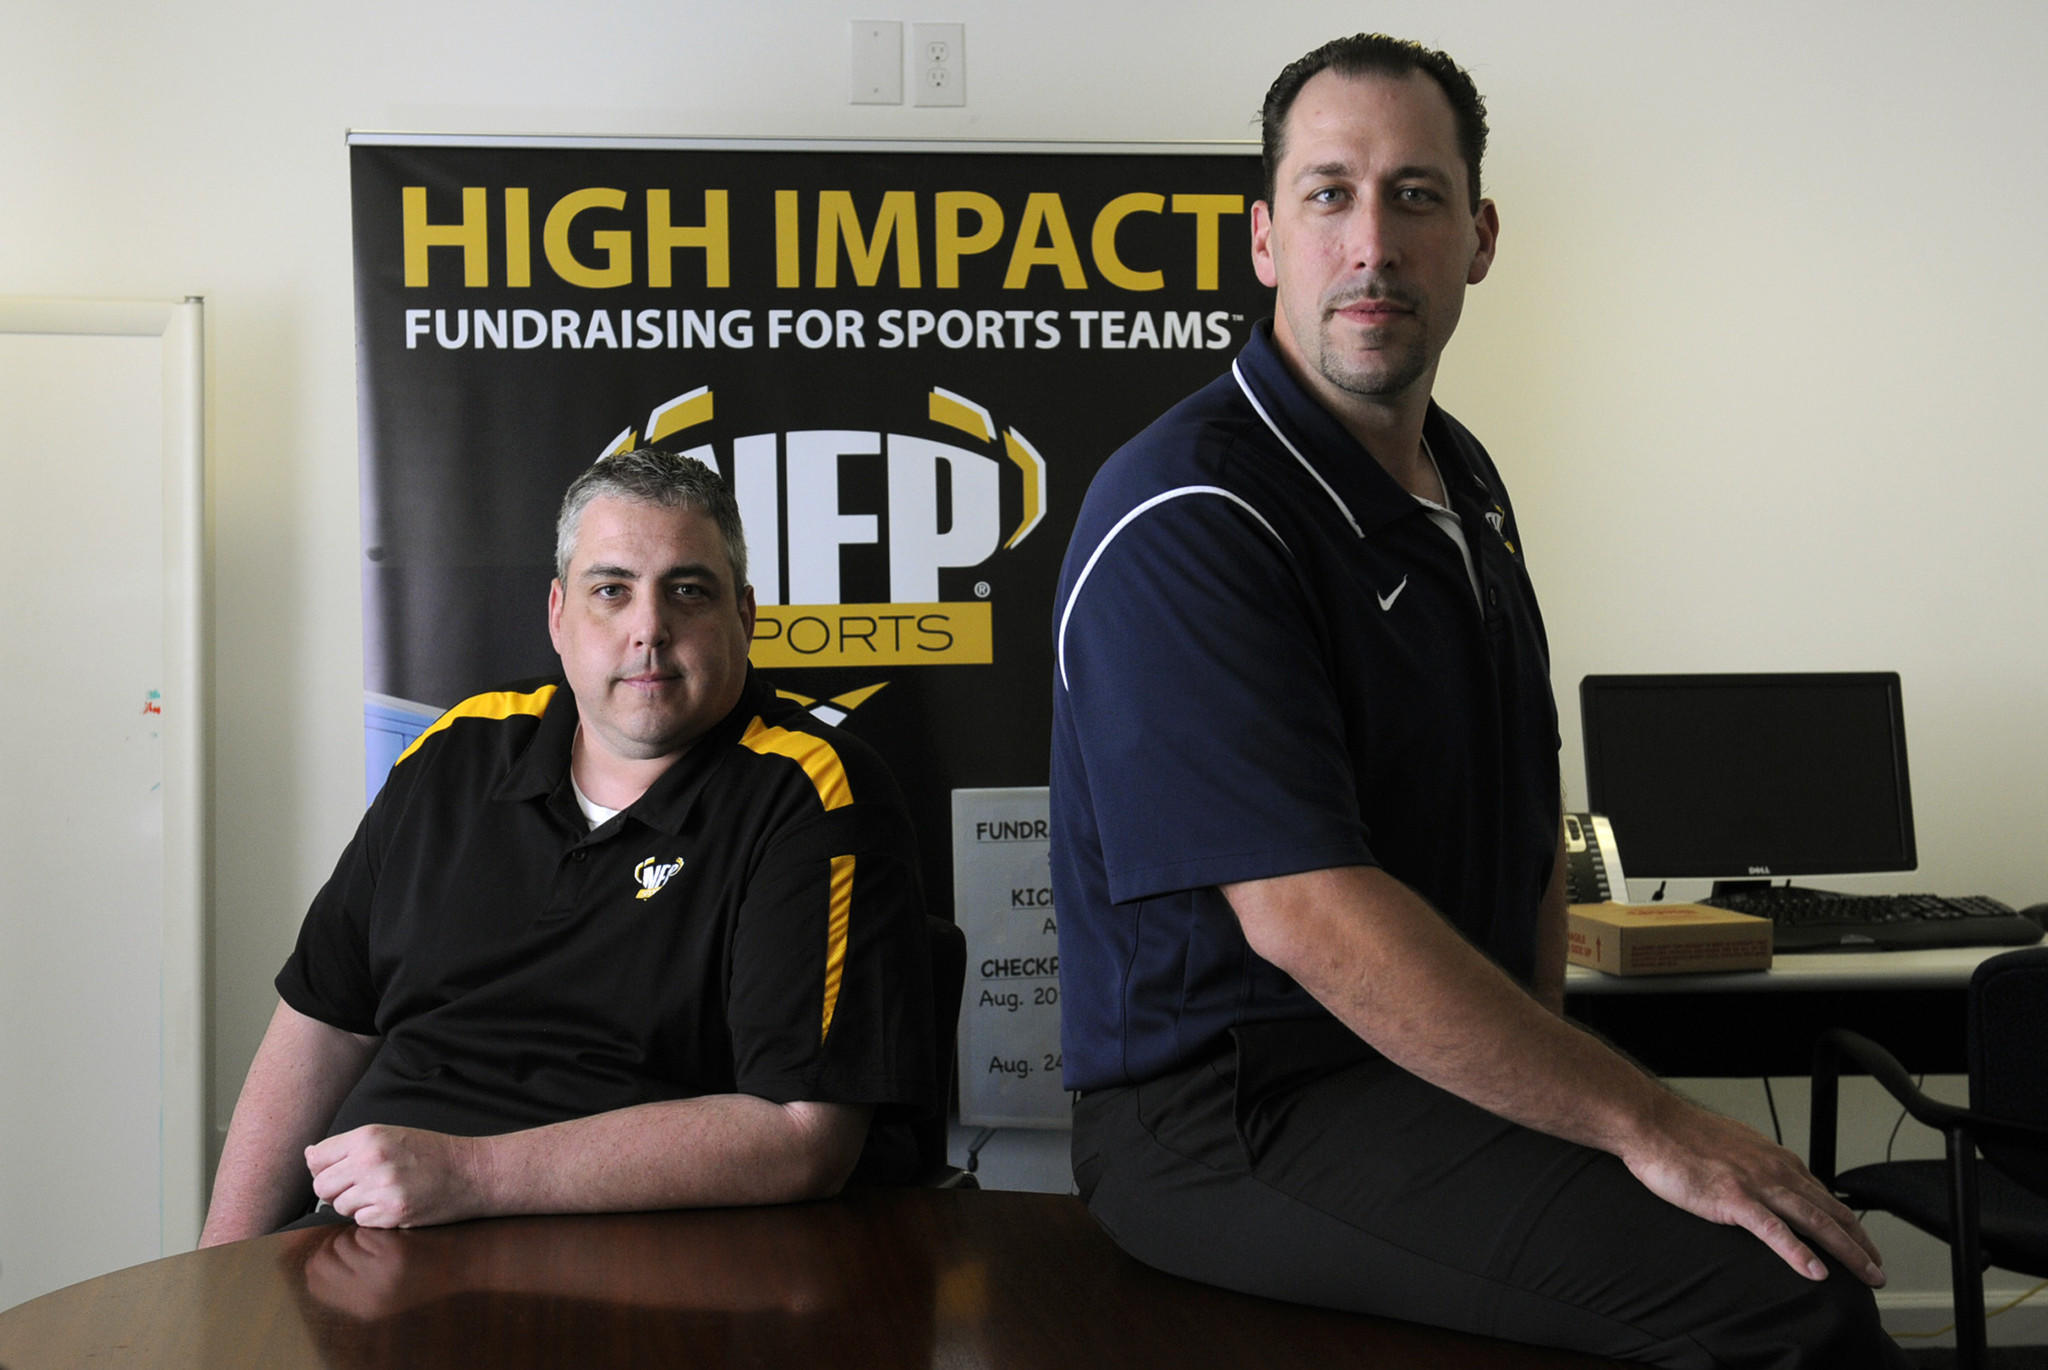 Don Crouch and James Thompson own NFP Sports, a high school sports fundraising company.